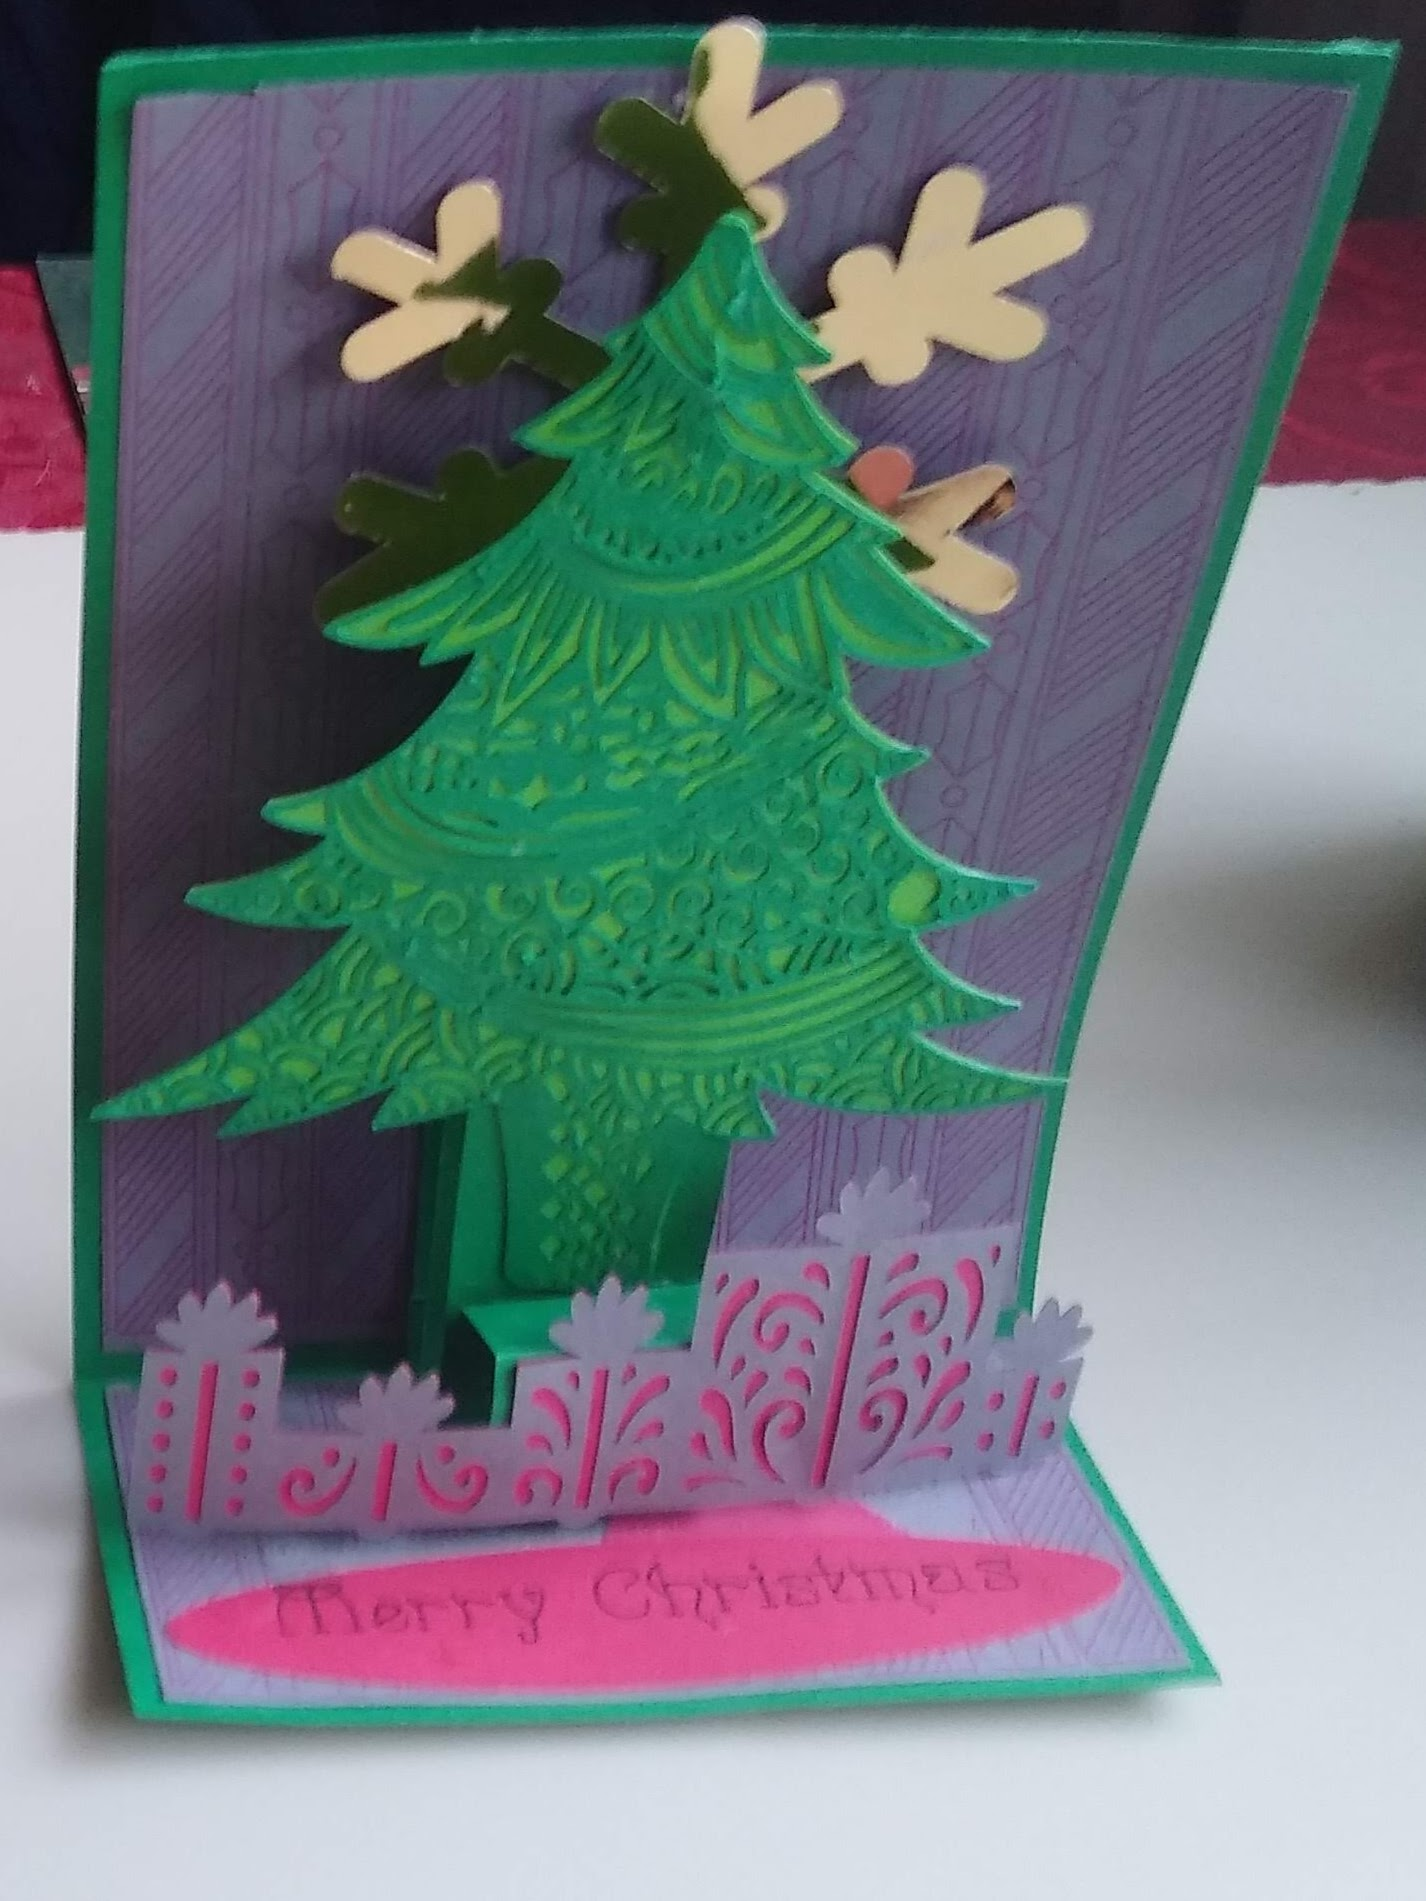 This Christmas Pulley Card is Amazing